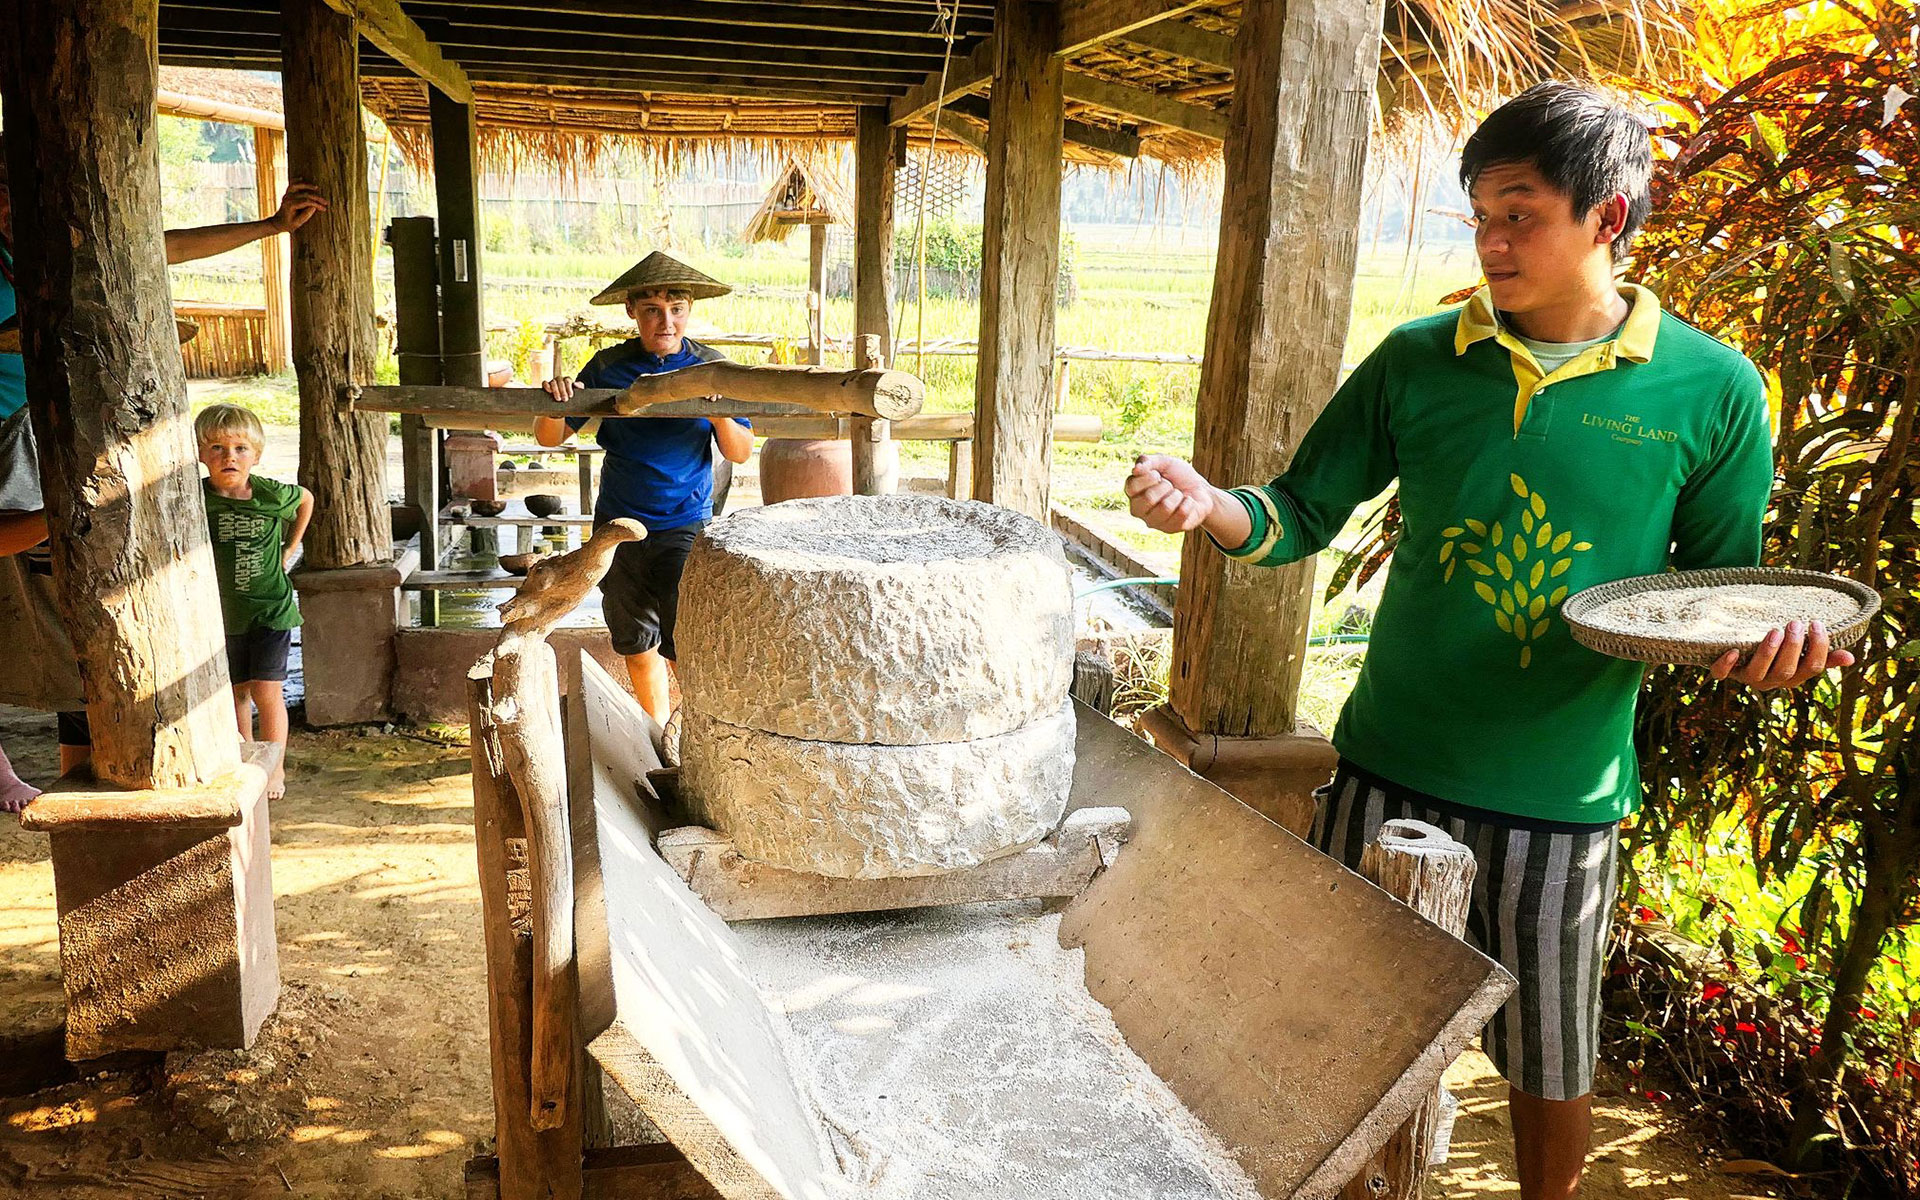 Join local life on organic farm and have fun time at the Living Land Company, that is one of interesting activities in Luang Prabang.